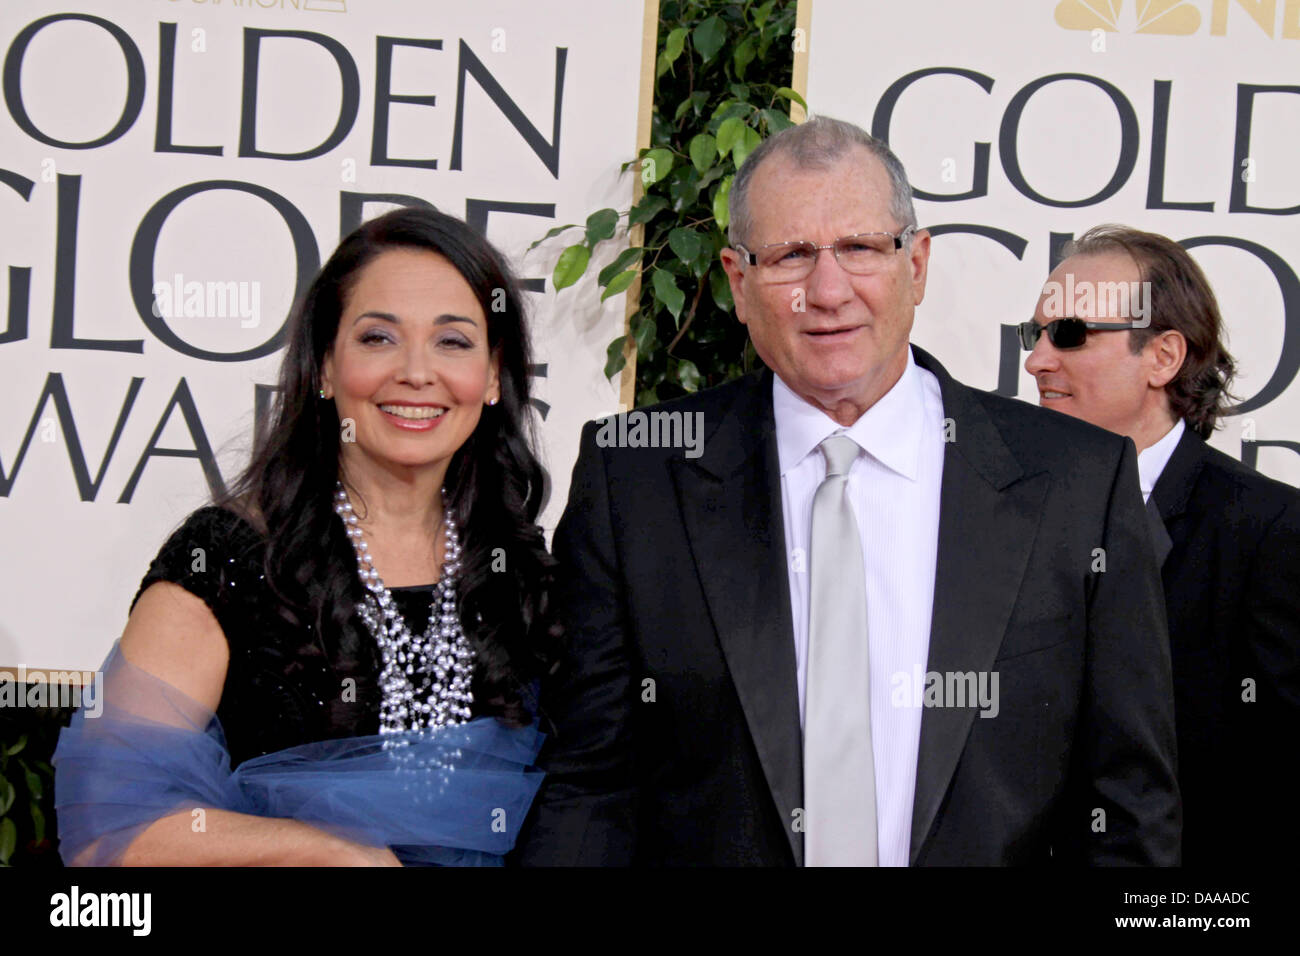 Us Actor Ed O Neill And His Wife Catherine Rusoff Arrives At The 68th Stock Photo Alamy No biography is available for catherine rusoff. https www alamy com stock photo us actor ed oneill and his wife catherine rusoff arrives at the 68th 58005400 html